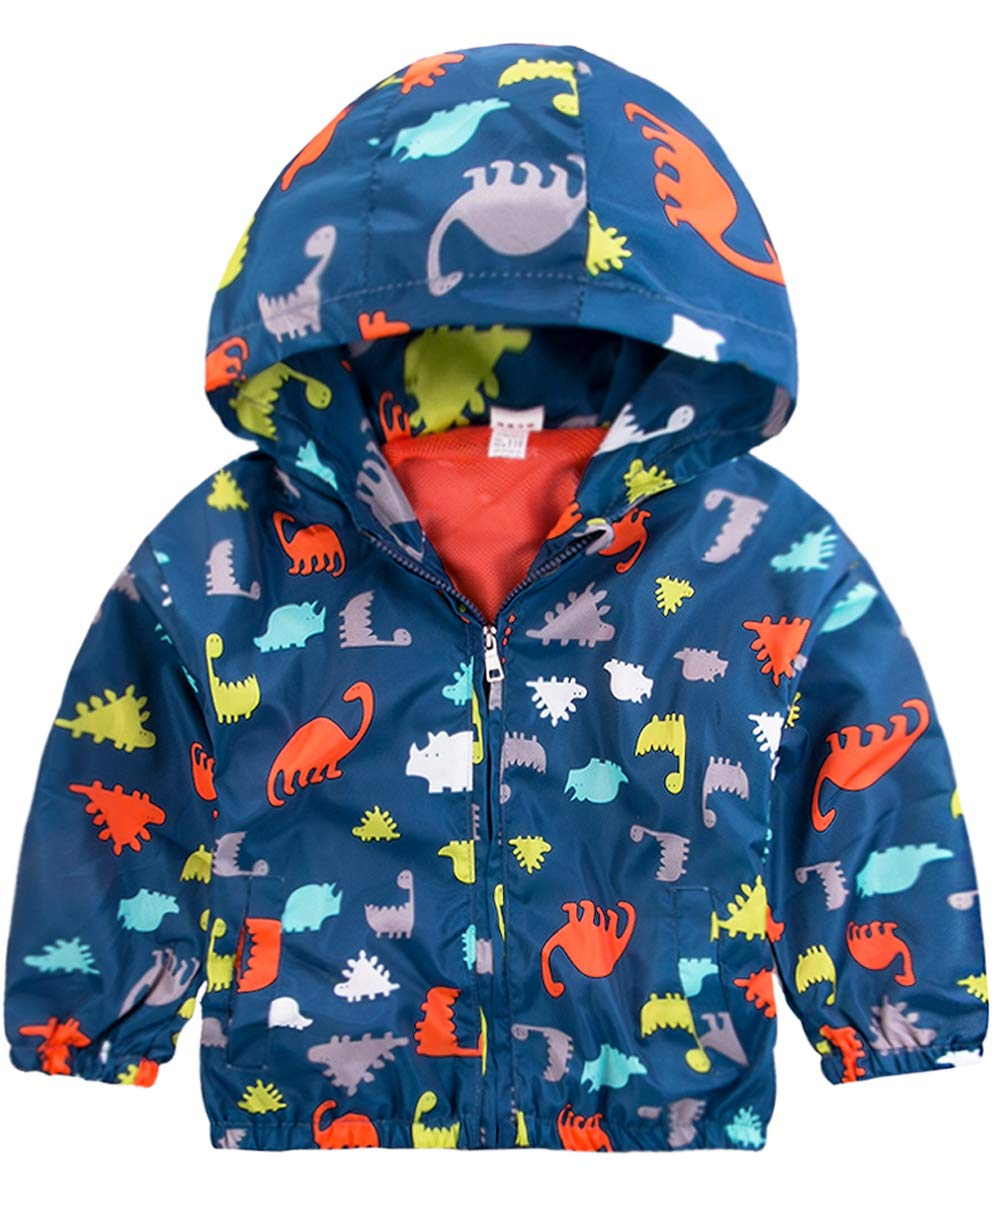 Little Boys Dinosaur Printed Jacket, Zip Hoodie Mesh Lined Casual Hooded Windbreaker for Toddler 8035002